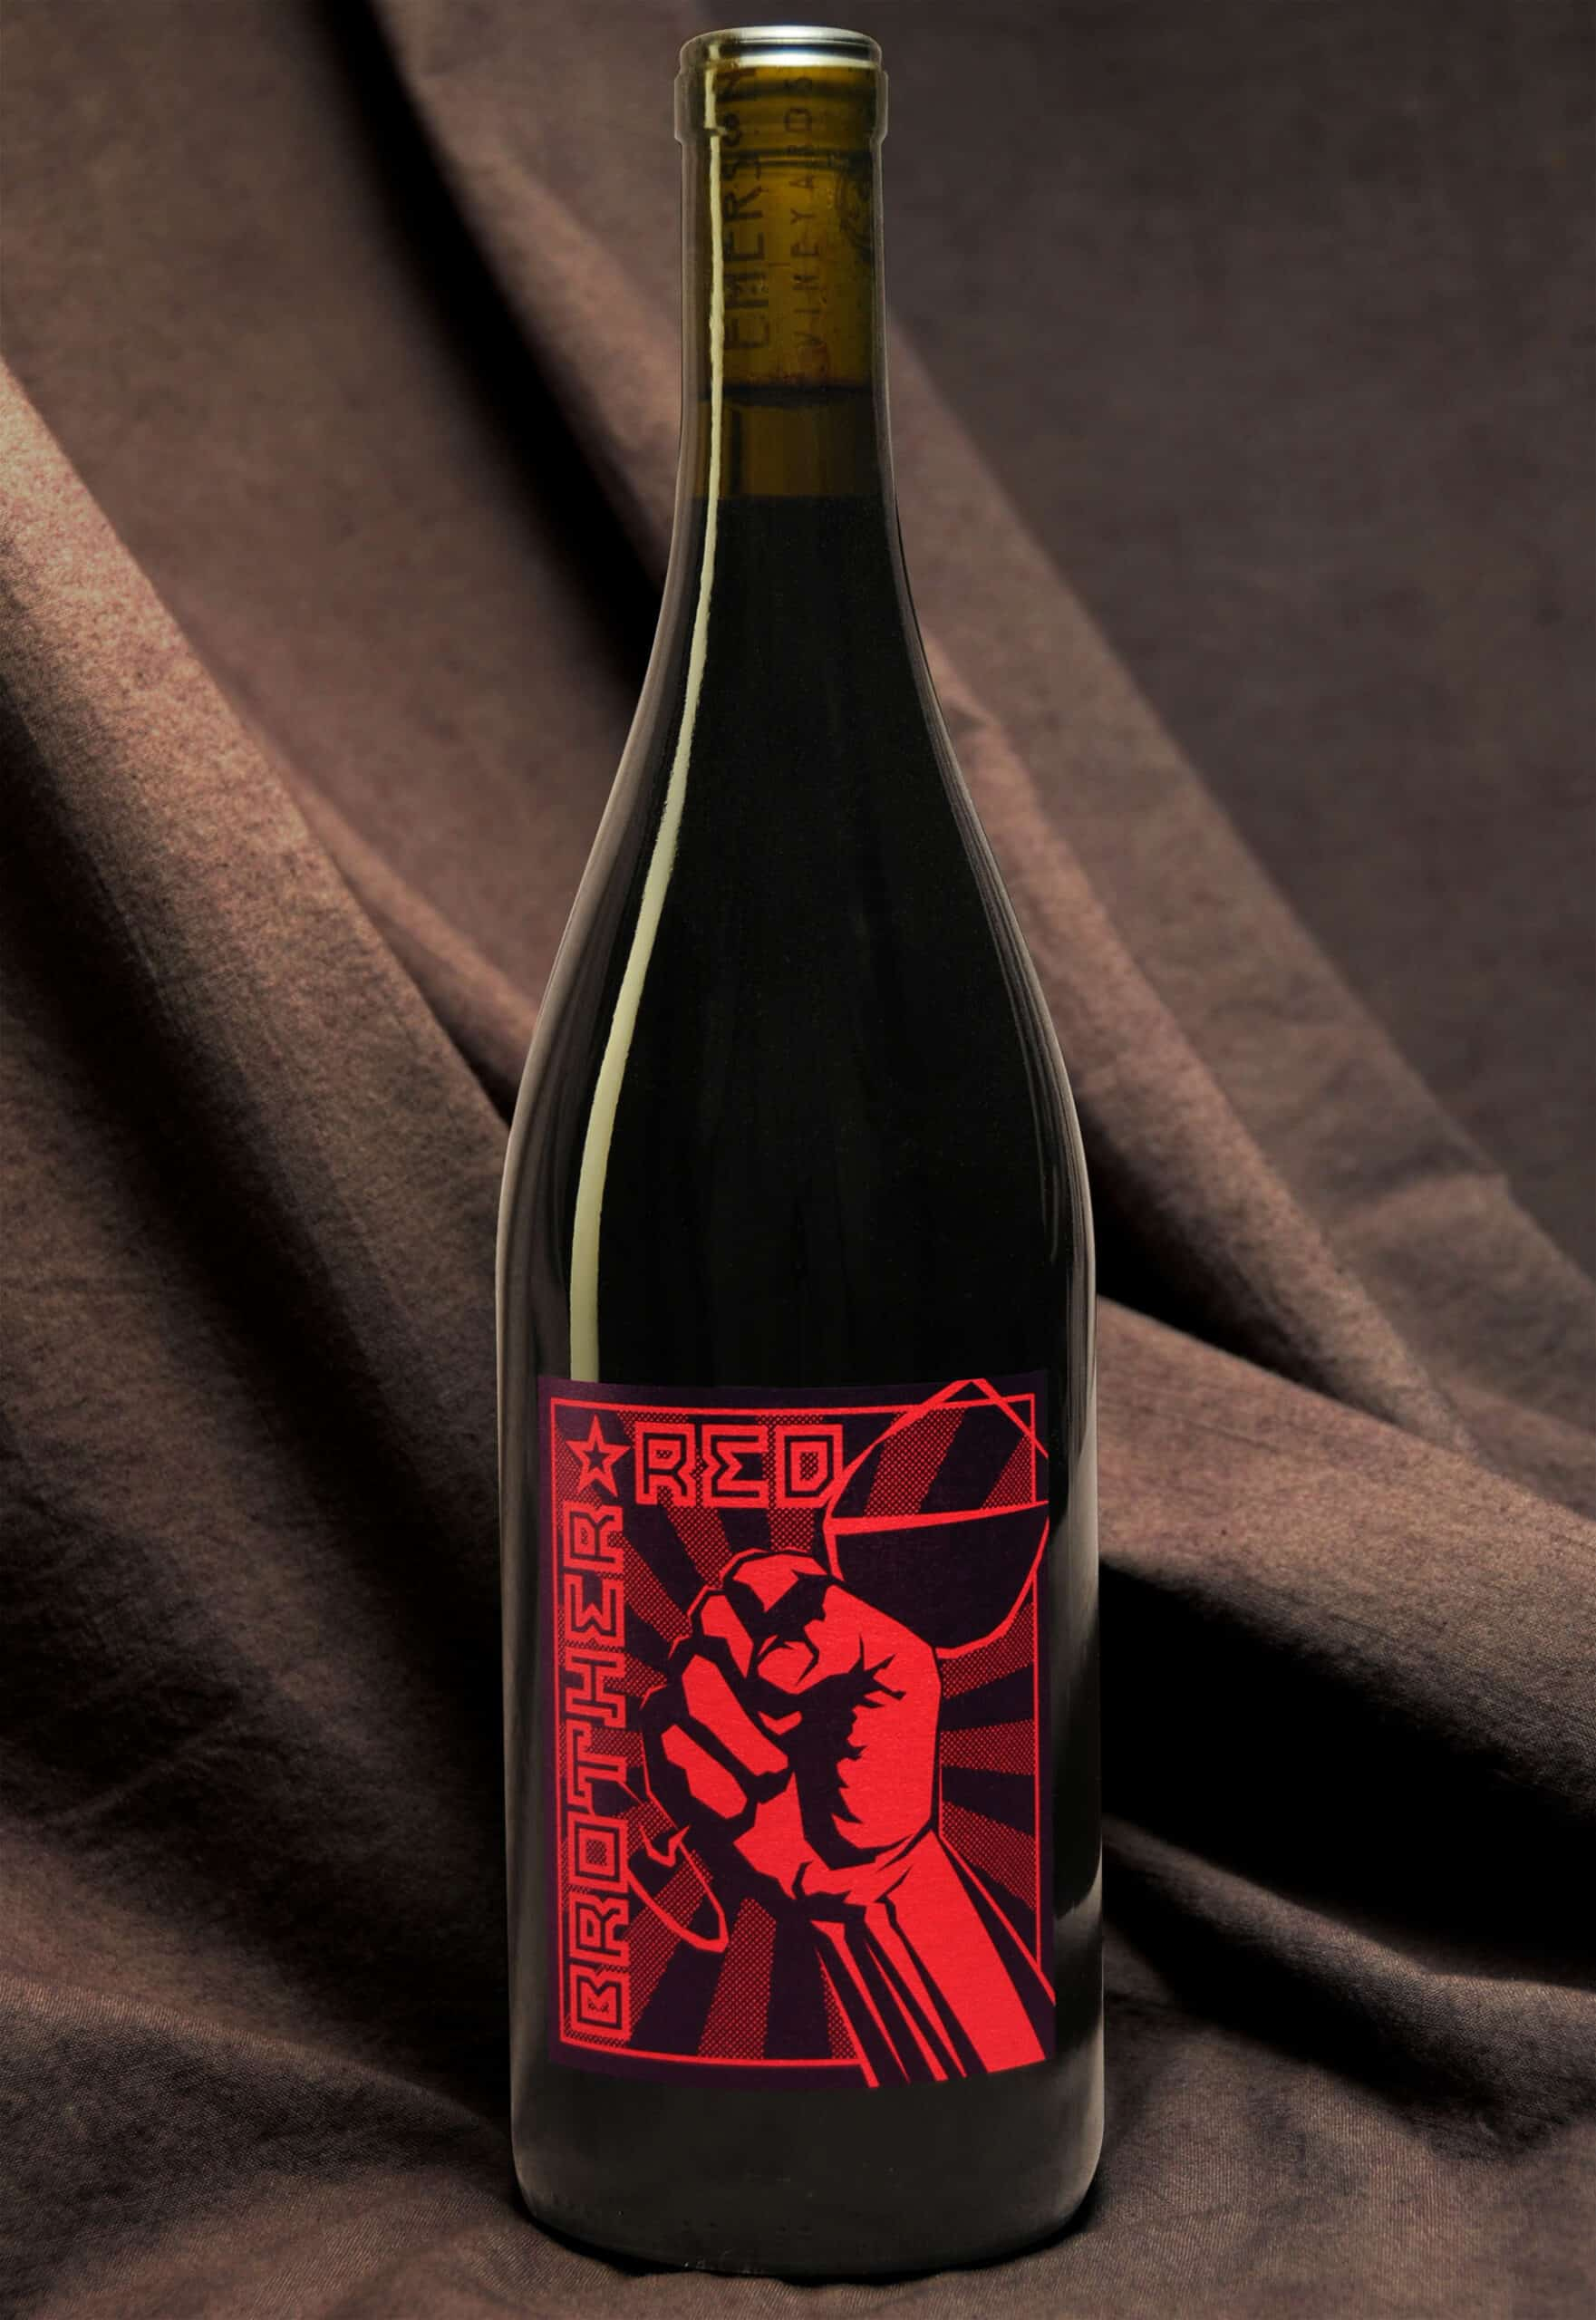 Brother Red wine bottle